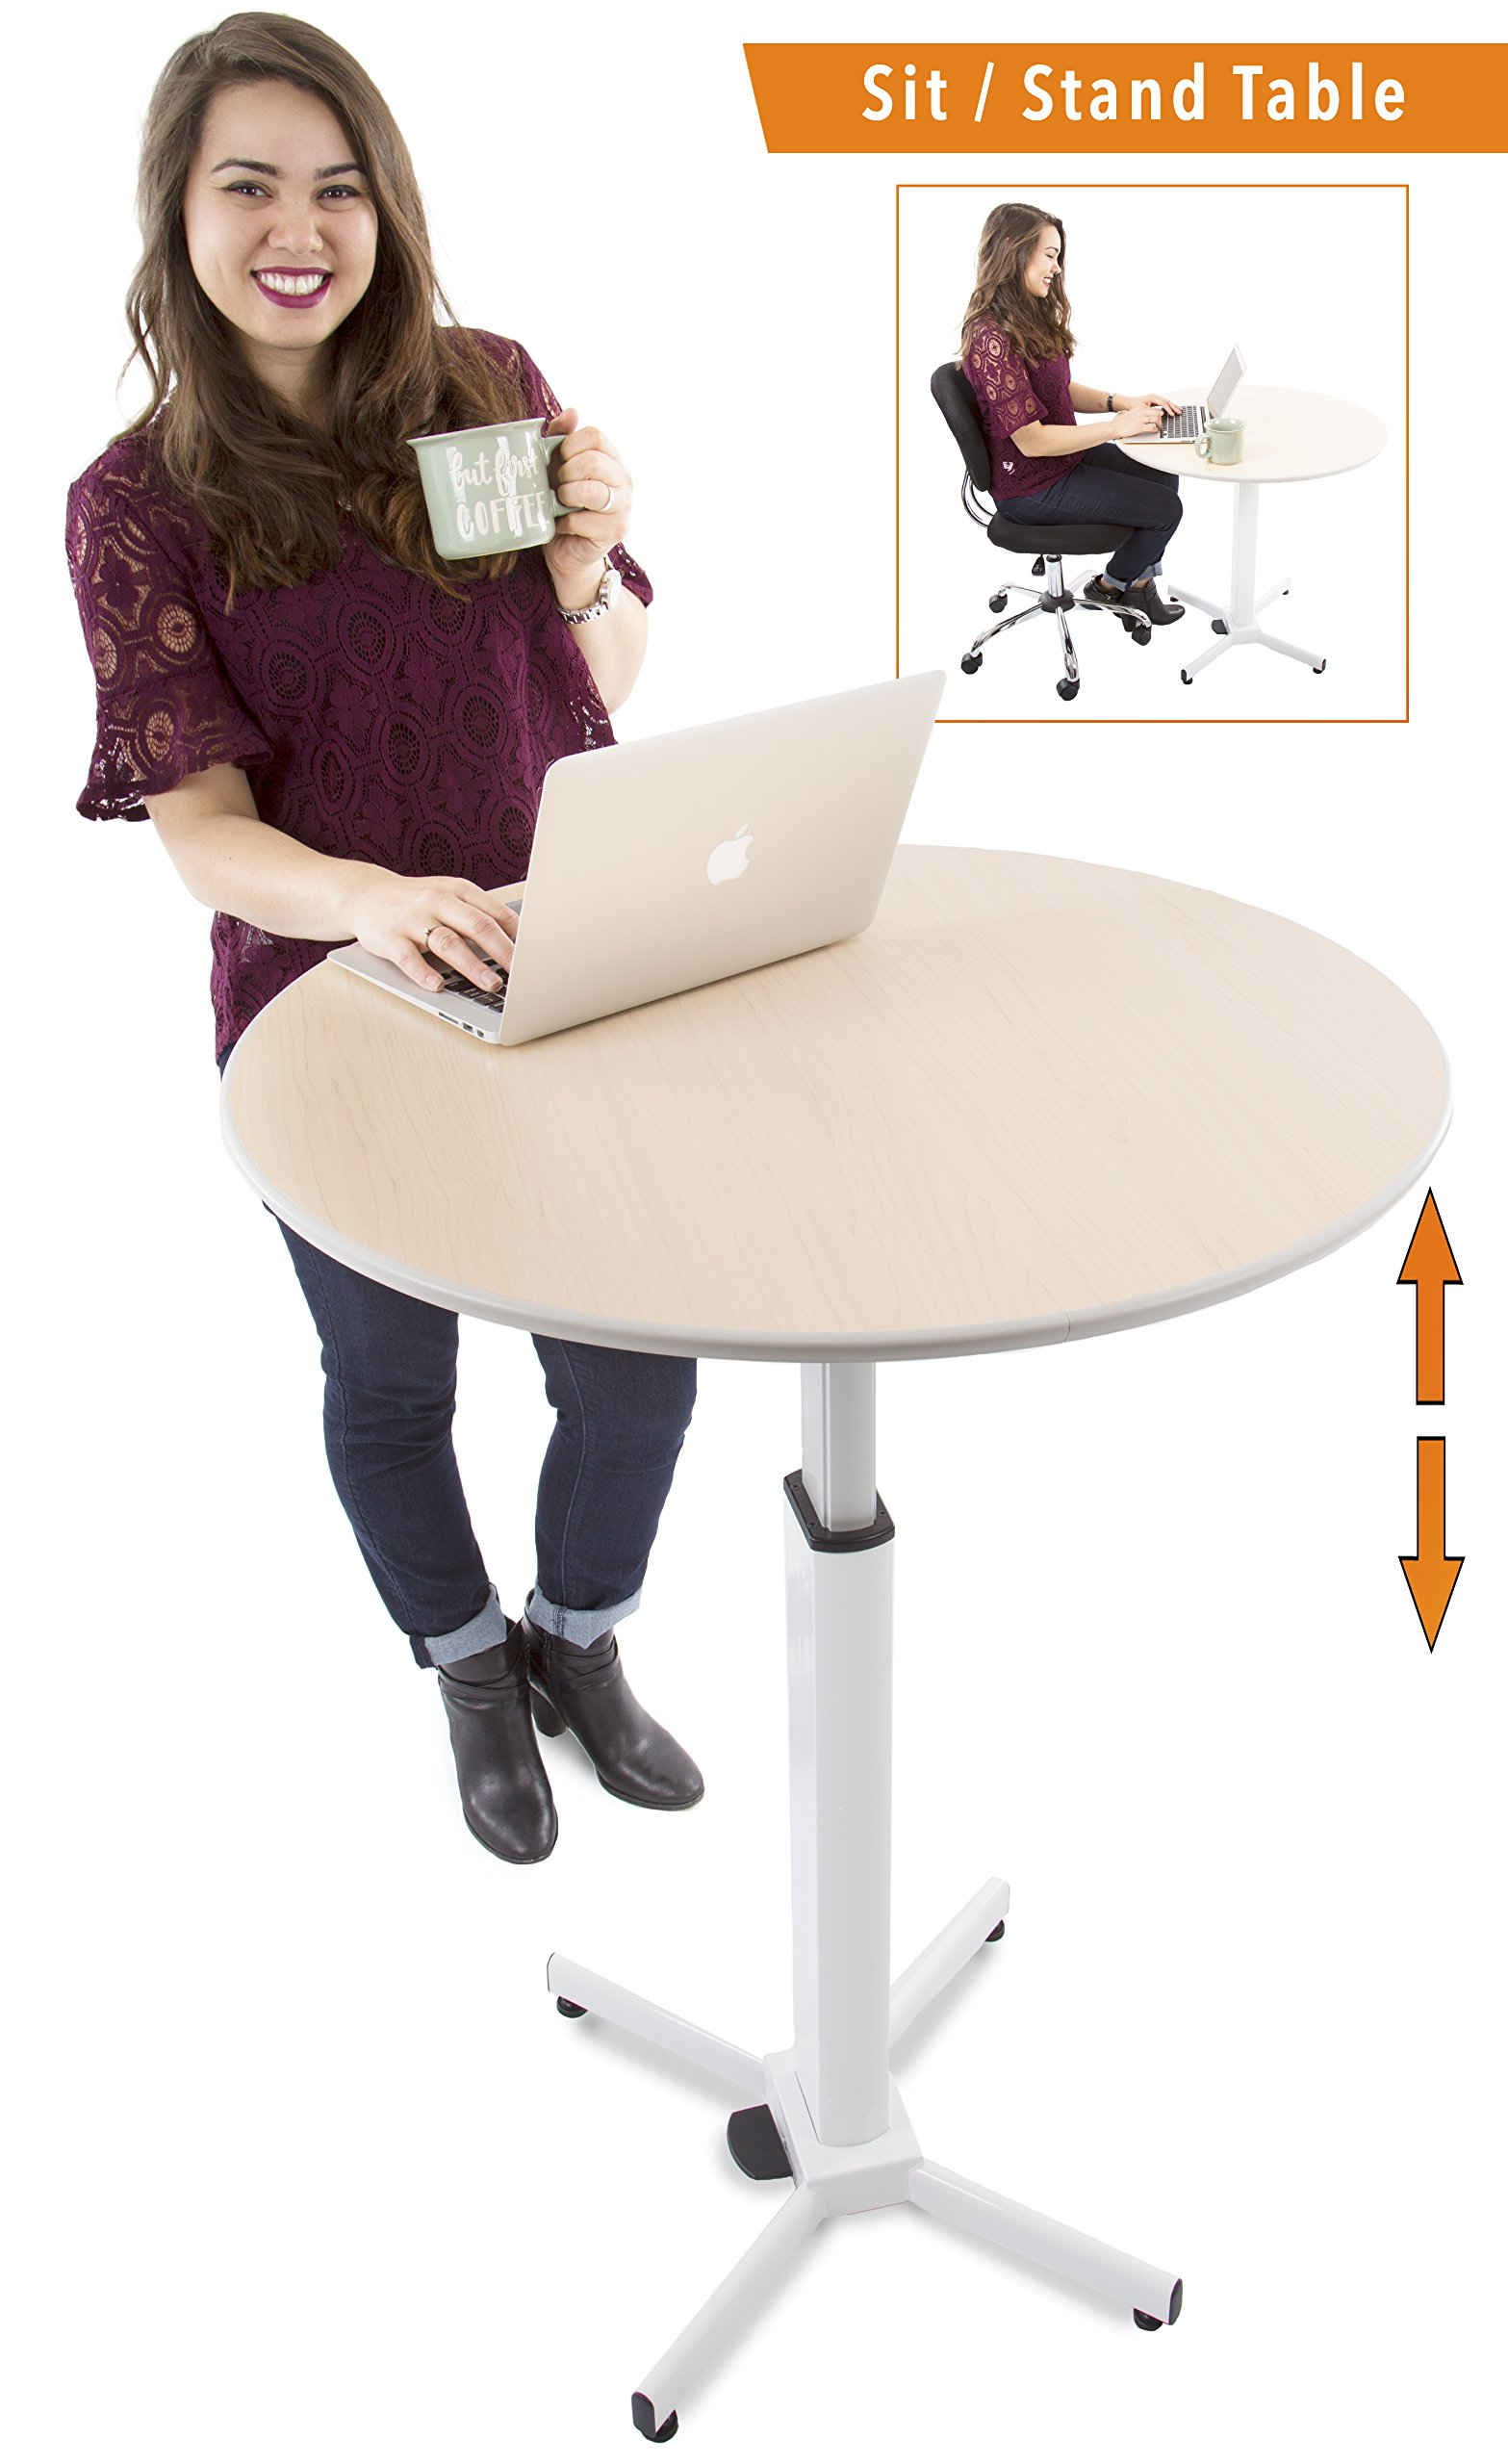 Adjustable Height Multifunctional Round Table - Perfect use for Cocktail Table, Sit to Stand Desk, Side Table - and More! Large Surface